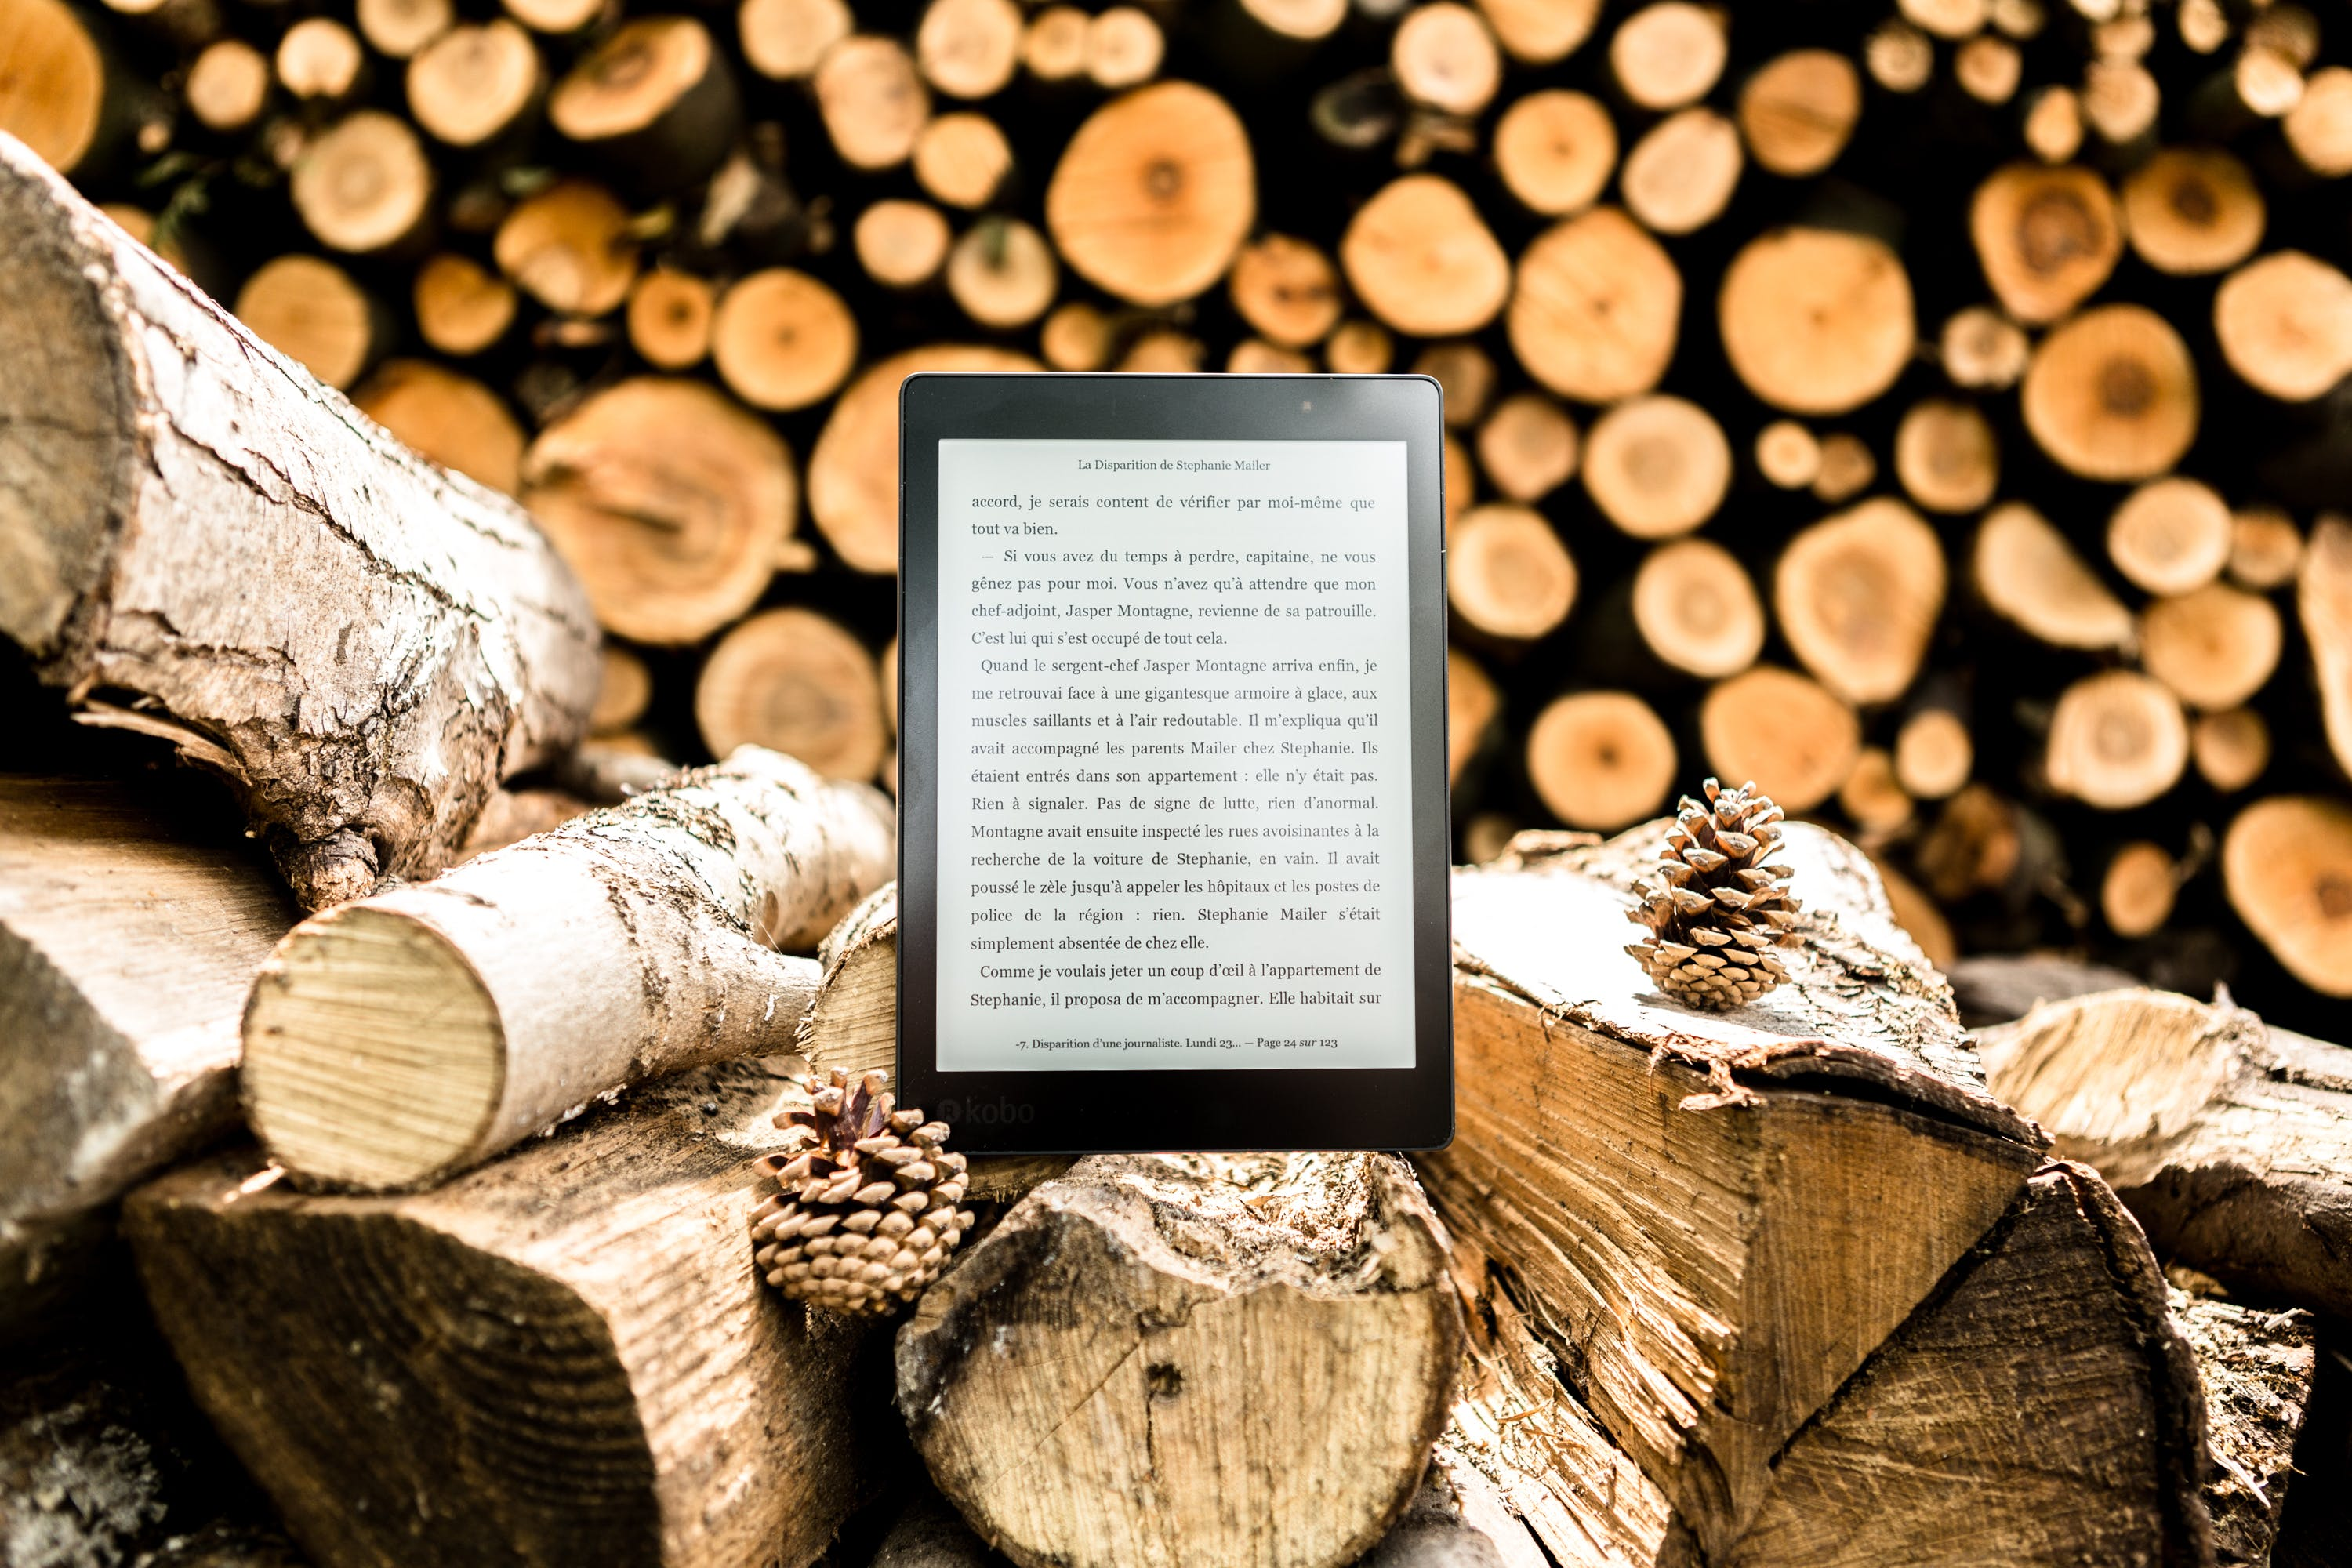 Black E-book Reader on Brown Tree Logs